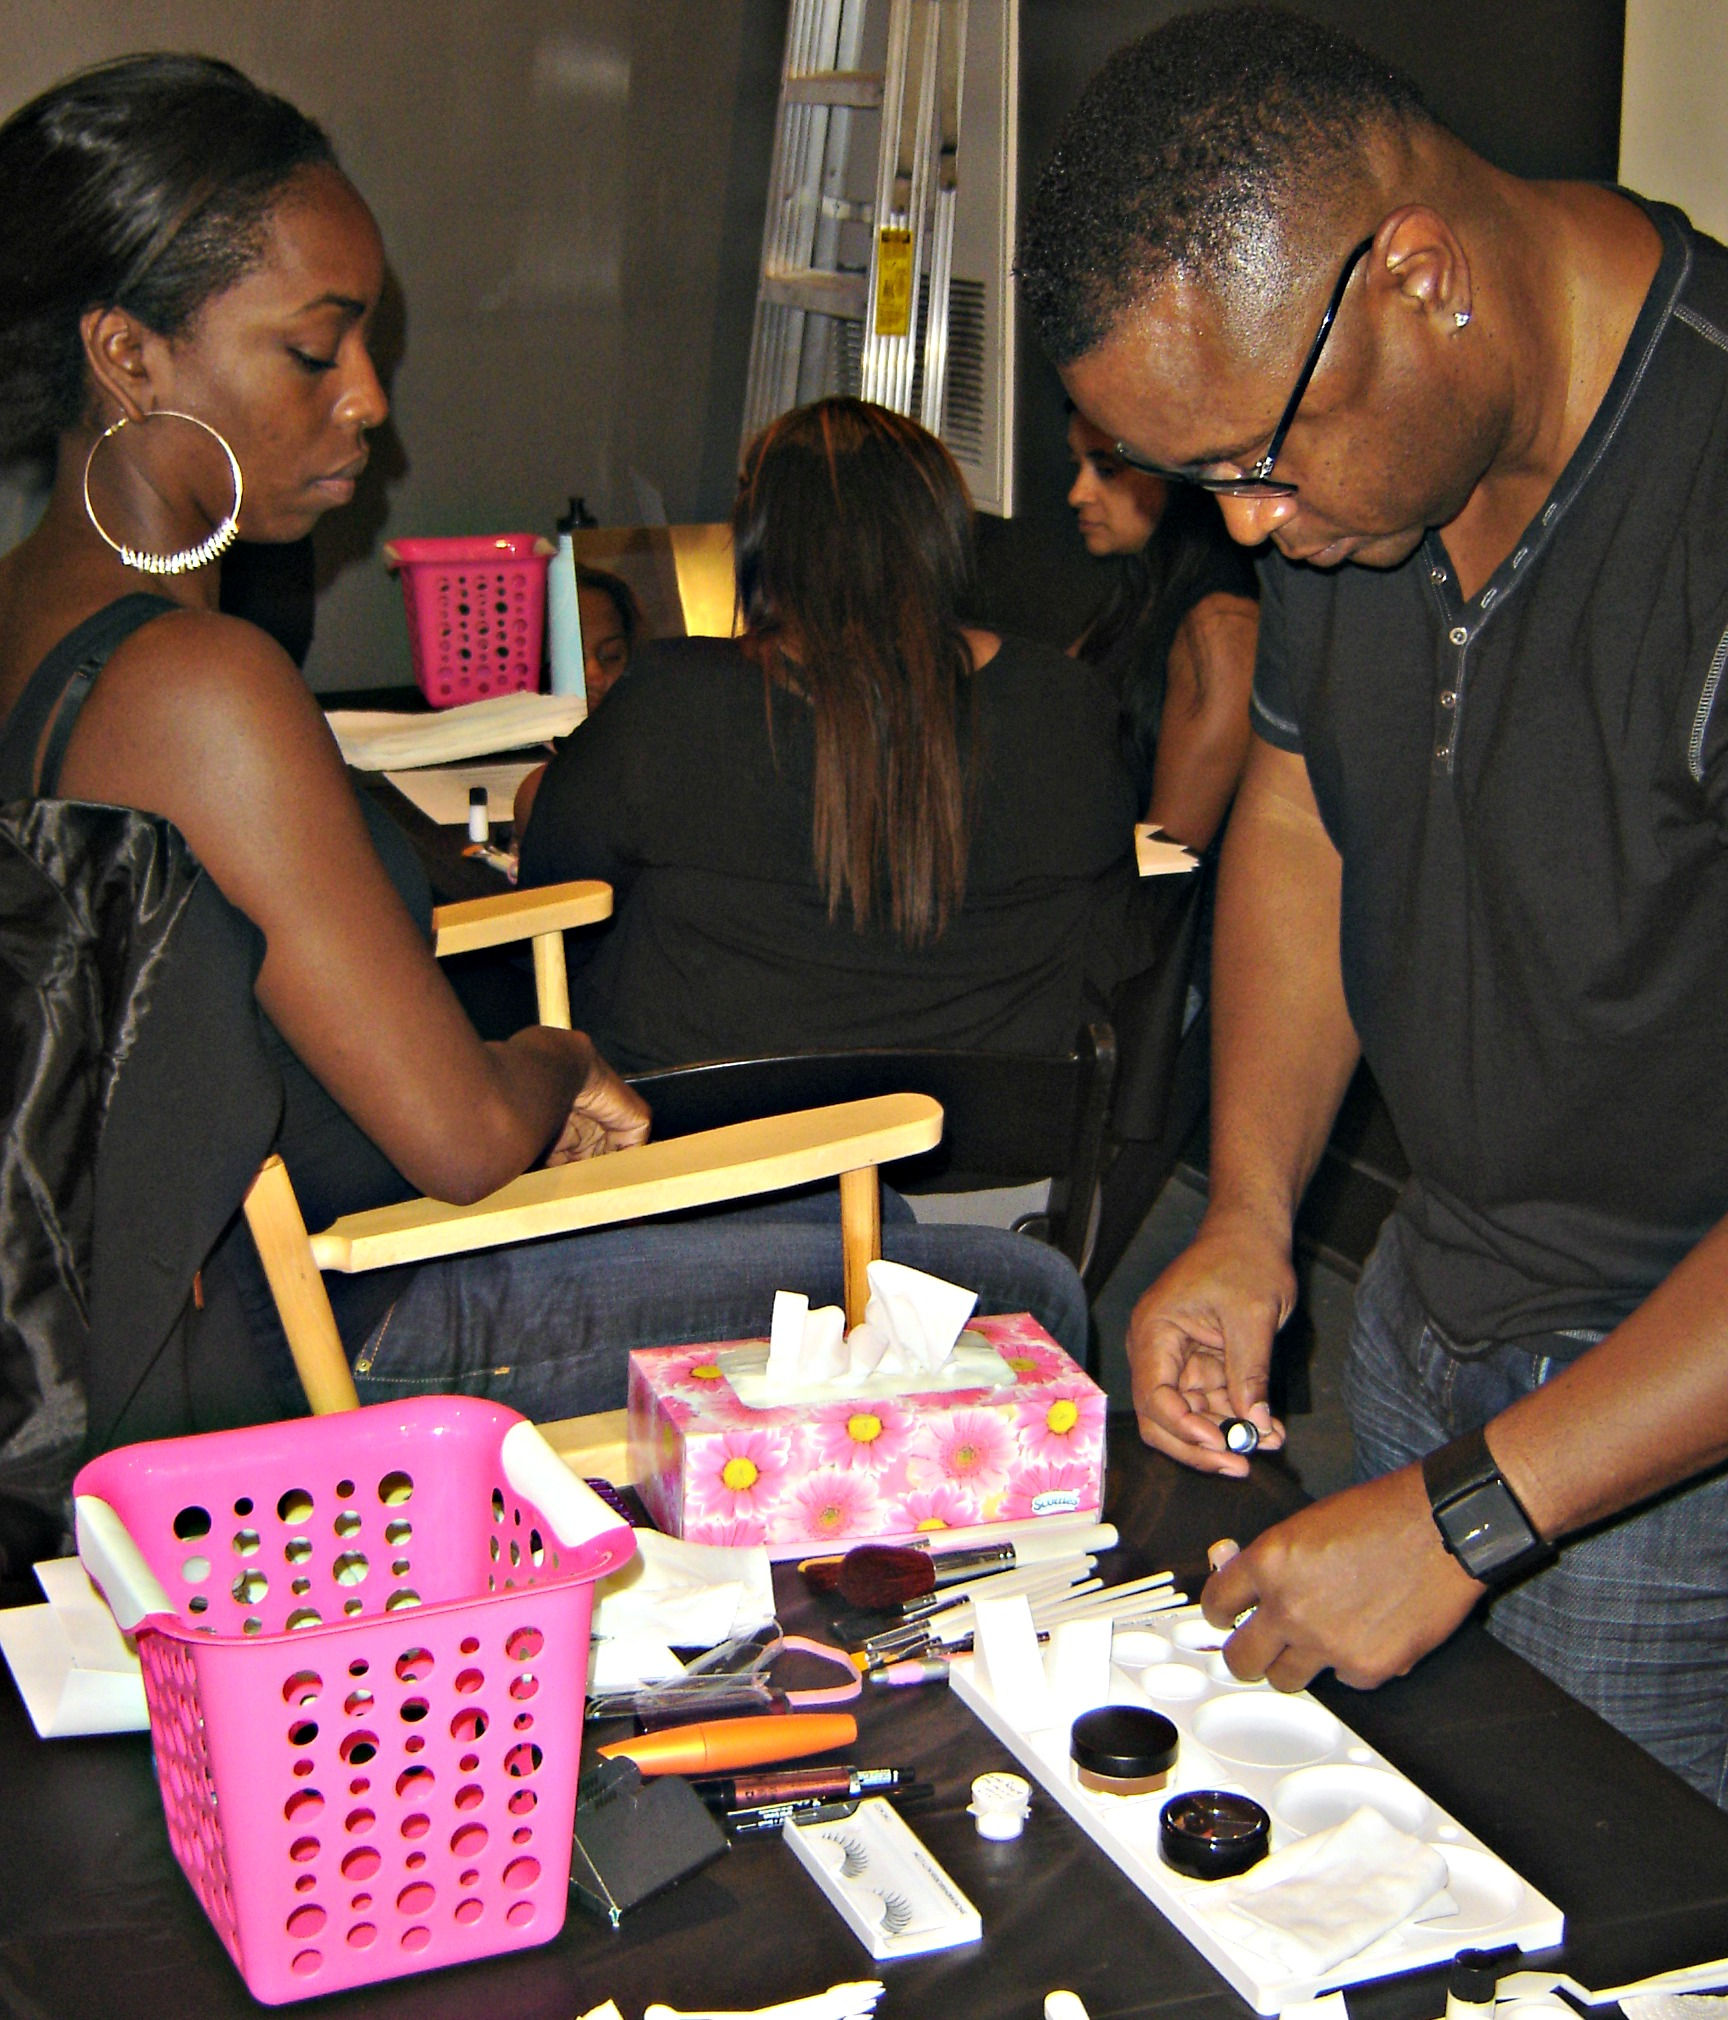 Saisha Beecham, Makeup Workshop, Makeup, Makeup Artist,